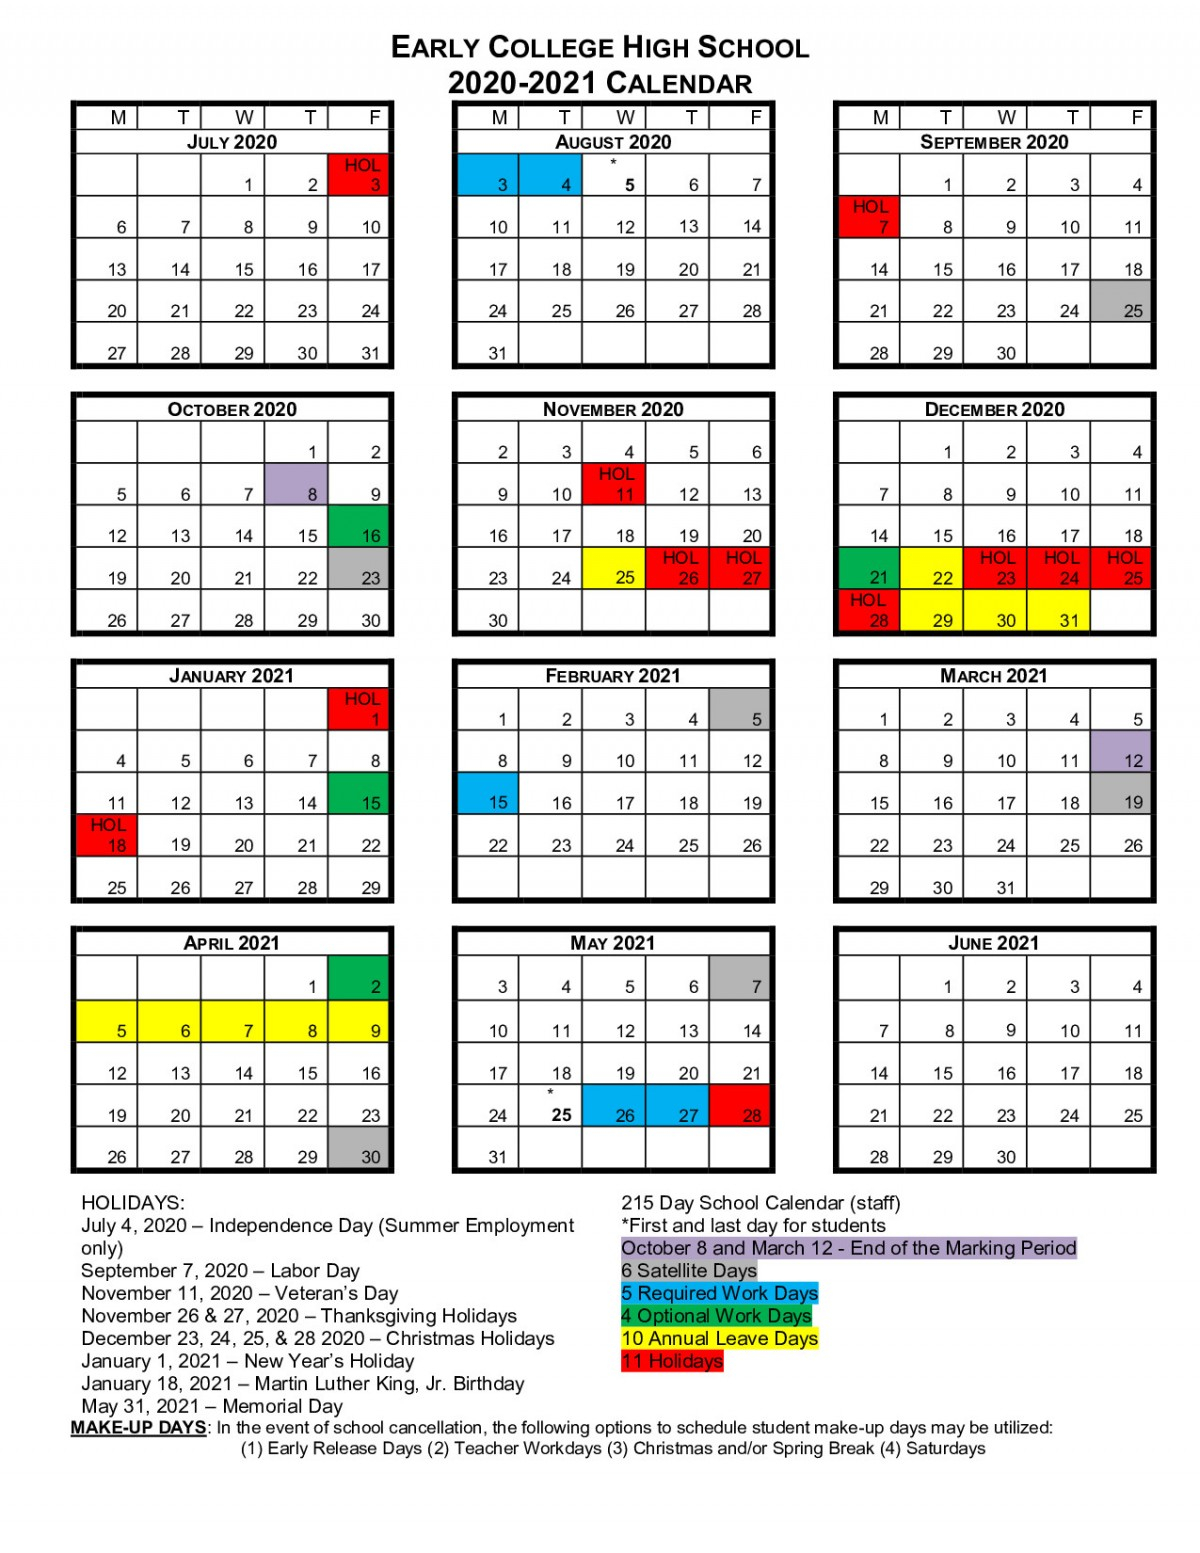 Bcs School Calendars | Beaufort County Schools Throughout St Charles Commnity College Calendar'